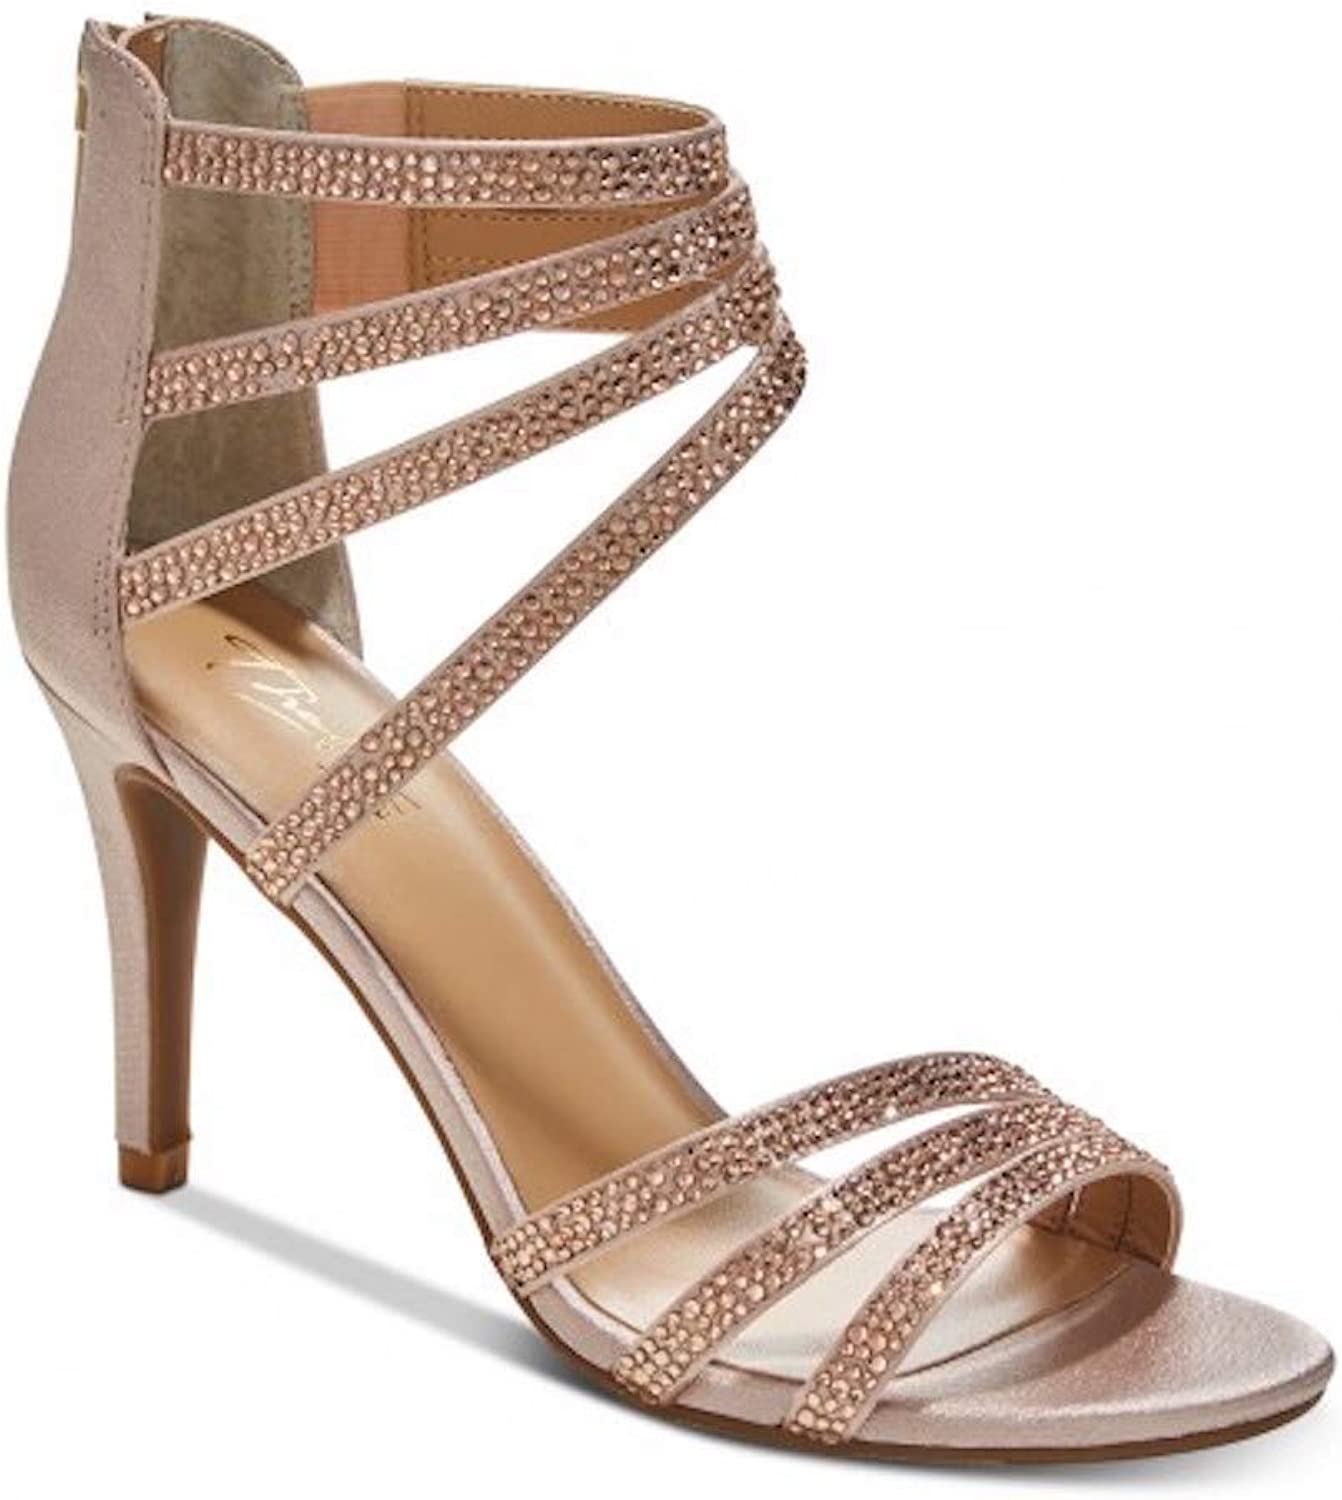 Thalia Sodi Womens Karlee2 Fabric Open Toe Casual Strappy Sandals